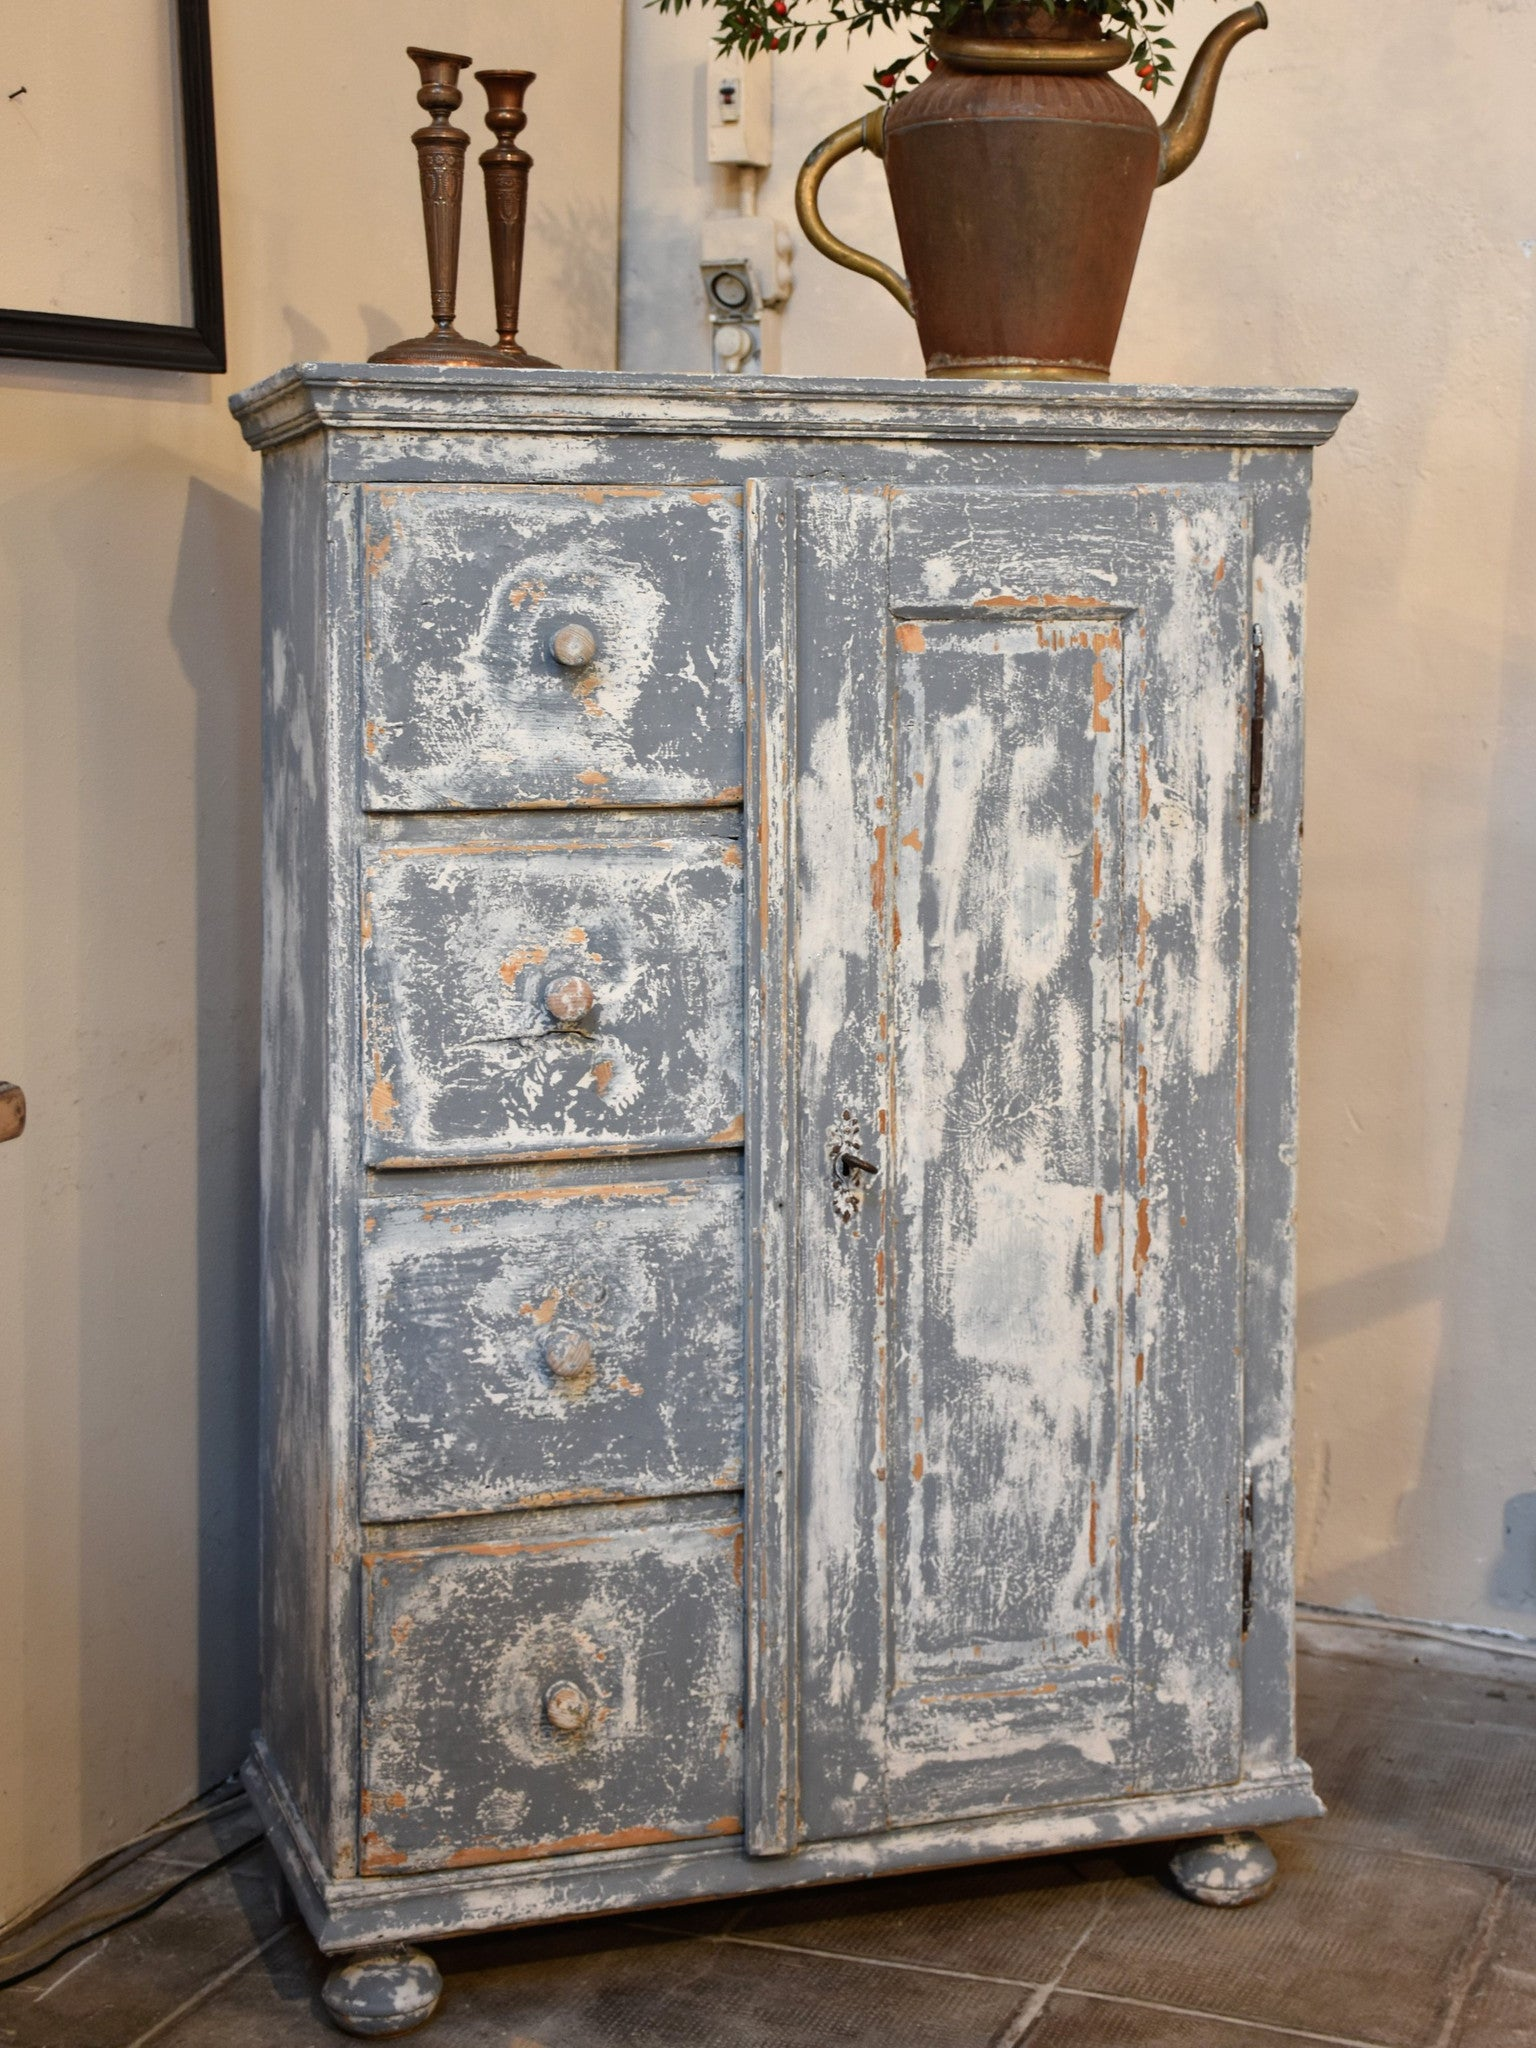 19th century French storage cabinet with blue patina